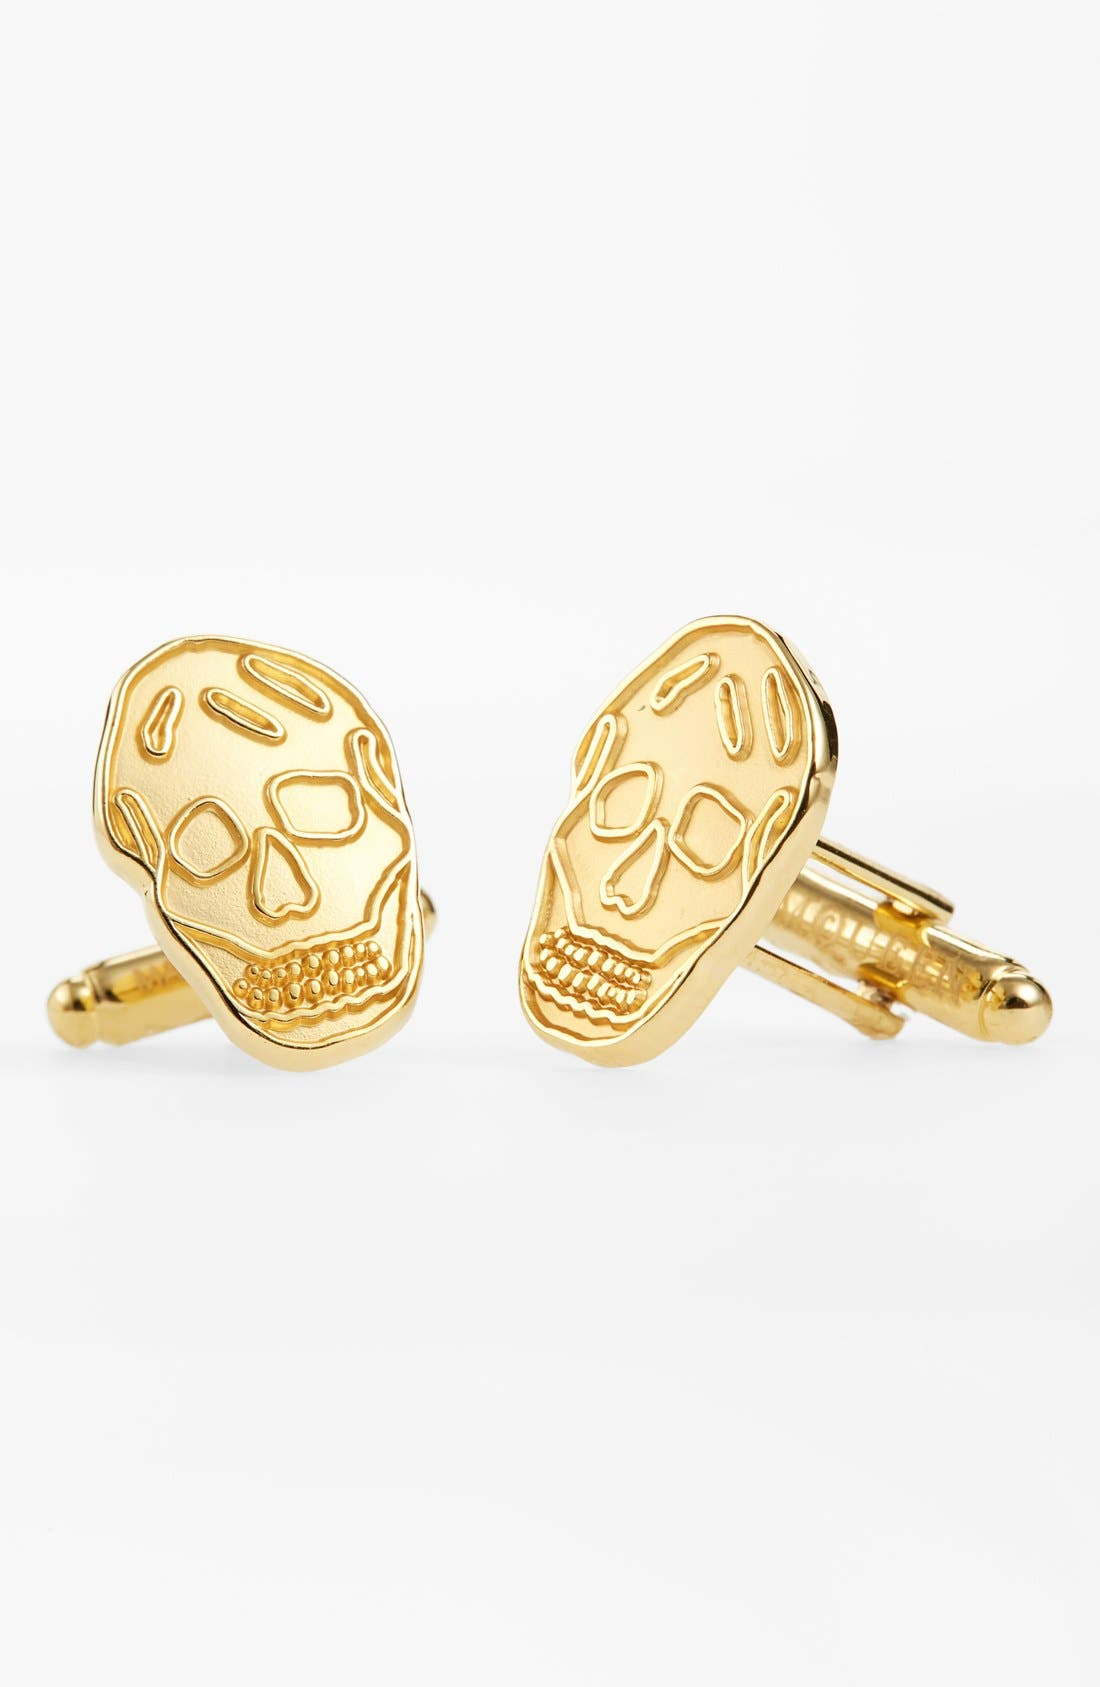 Brass Skull Cuff Links,                         Main,                         color, Gold